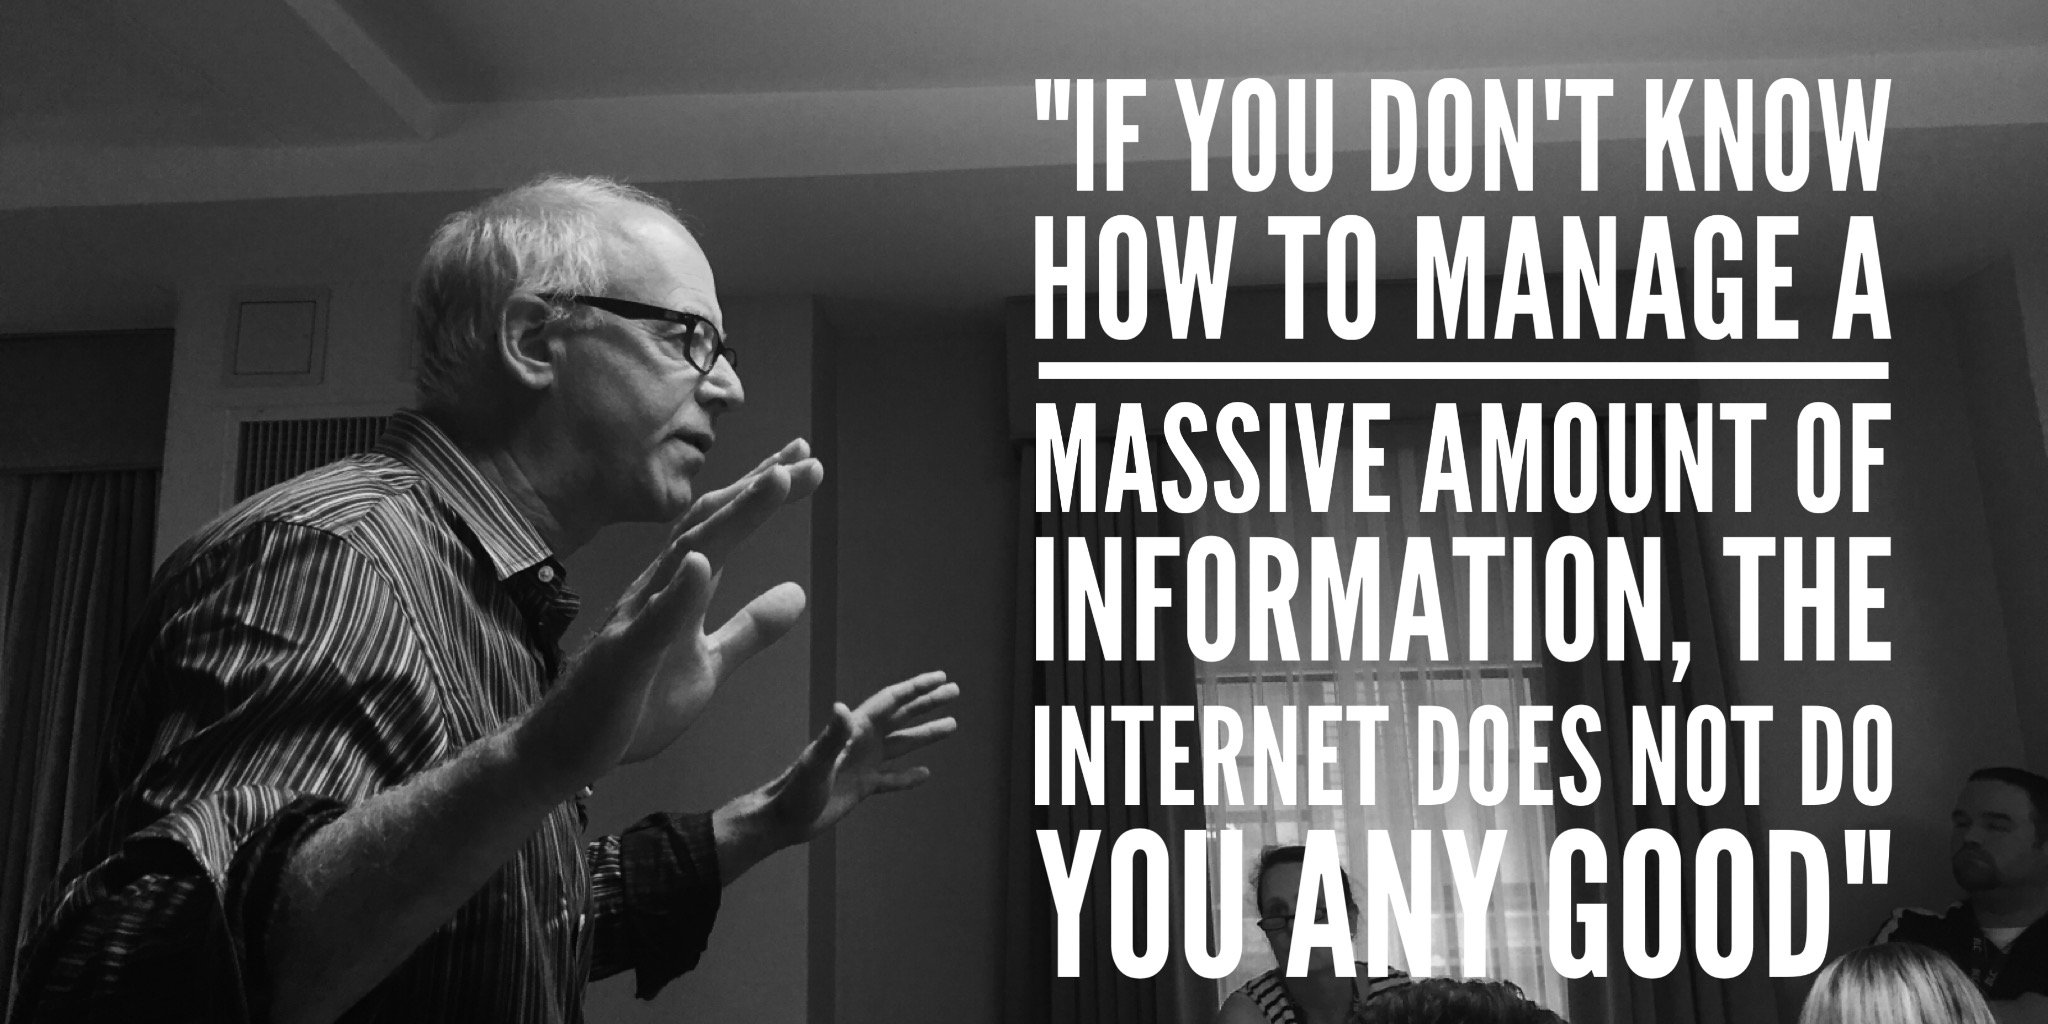 """""""If you don't know how to manage a MASSIVE amount of information, the Internet does not do you any good"""" #1st5days https://t.co/eX84Nu9wvl"""